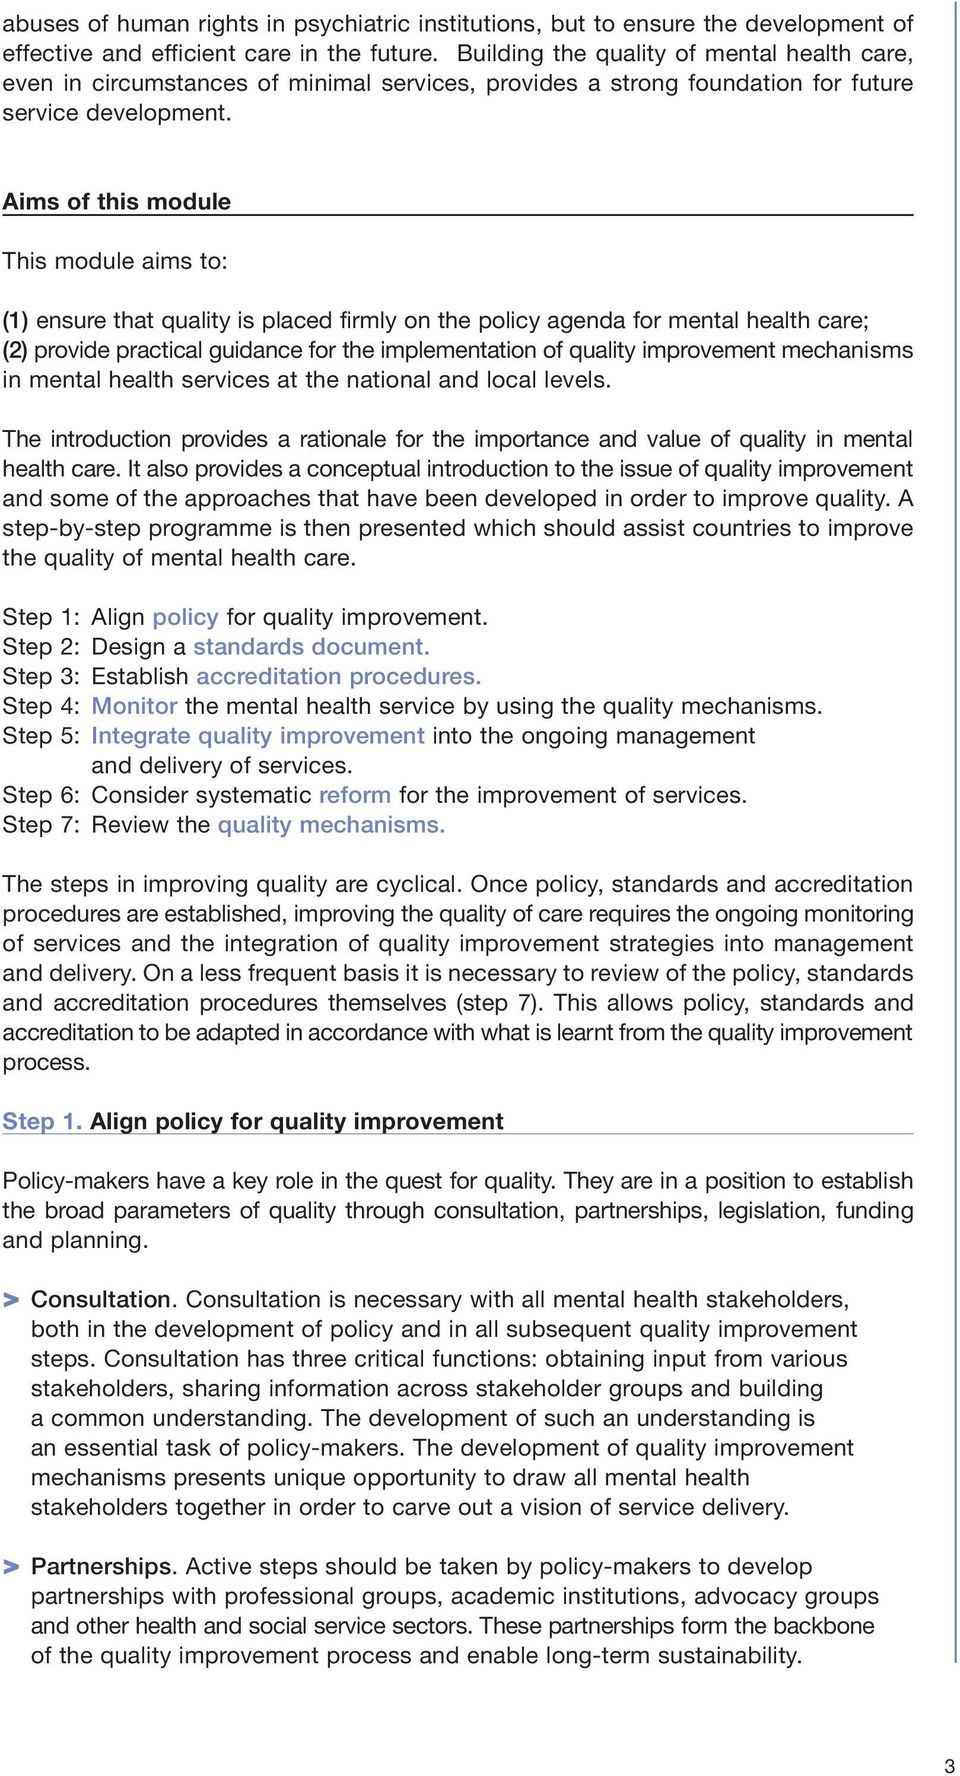 Aims of this module This module aims to: (1) ensure that quality is placed firmly on the policy agenda for mental health care; (2) provide practical guidance for the implementation of quality